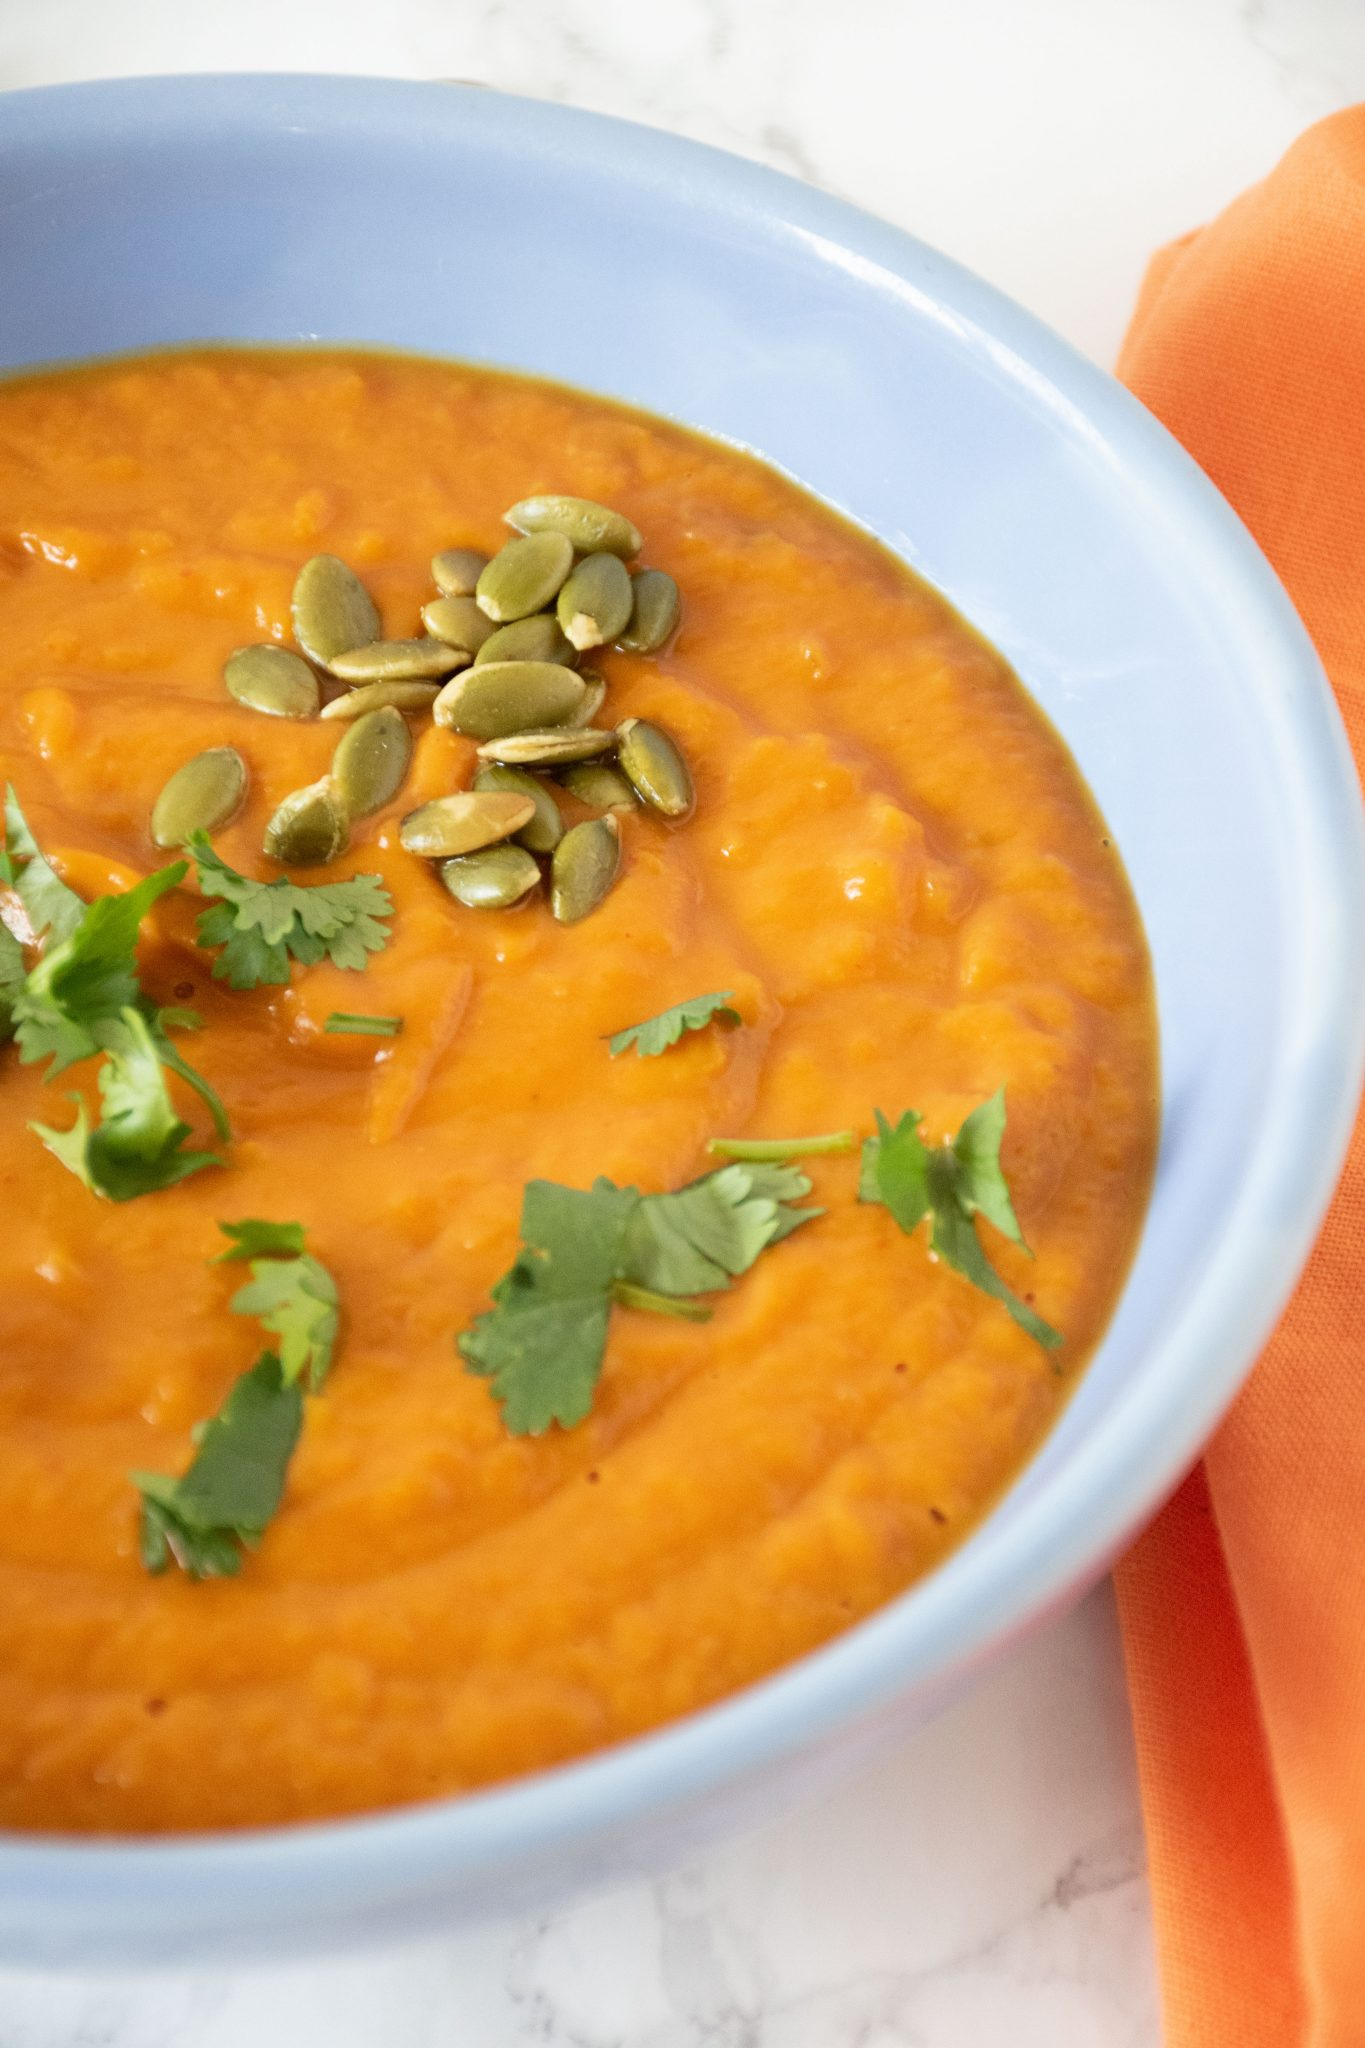 Pumpkin soup in a blue bowl, garnished with cilantro and pepitas.